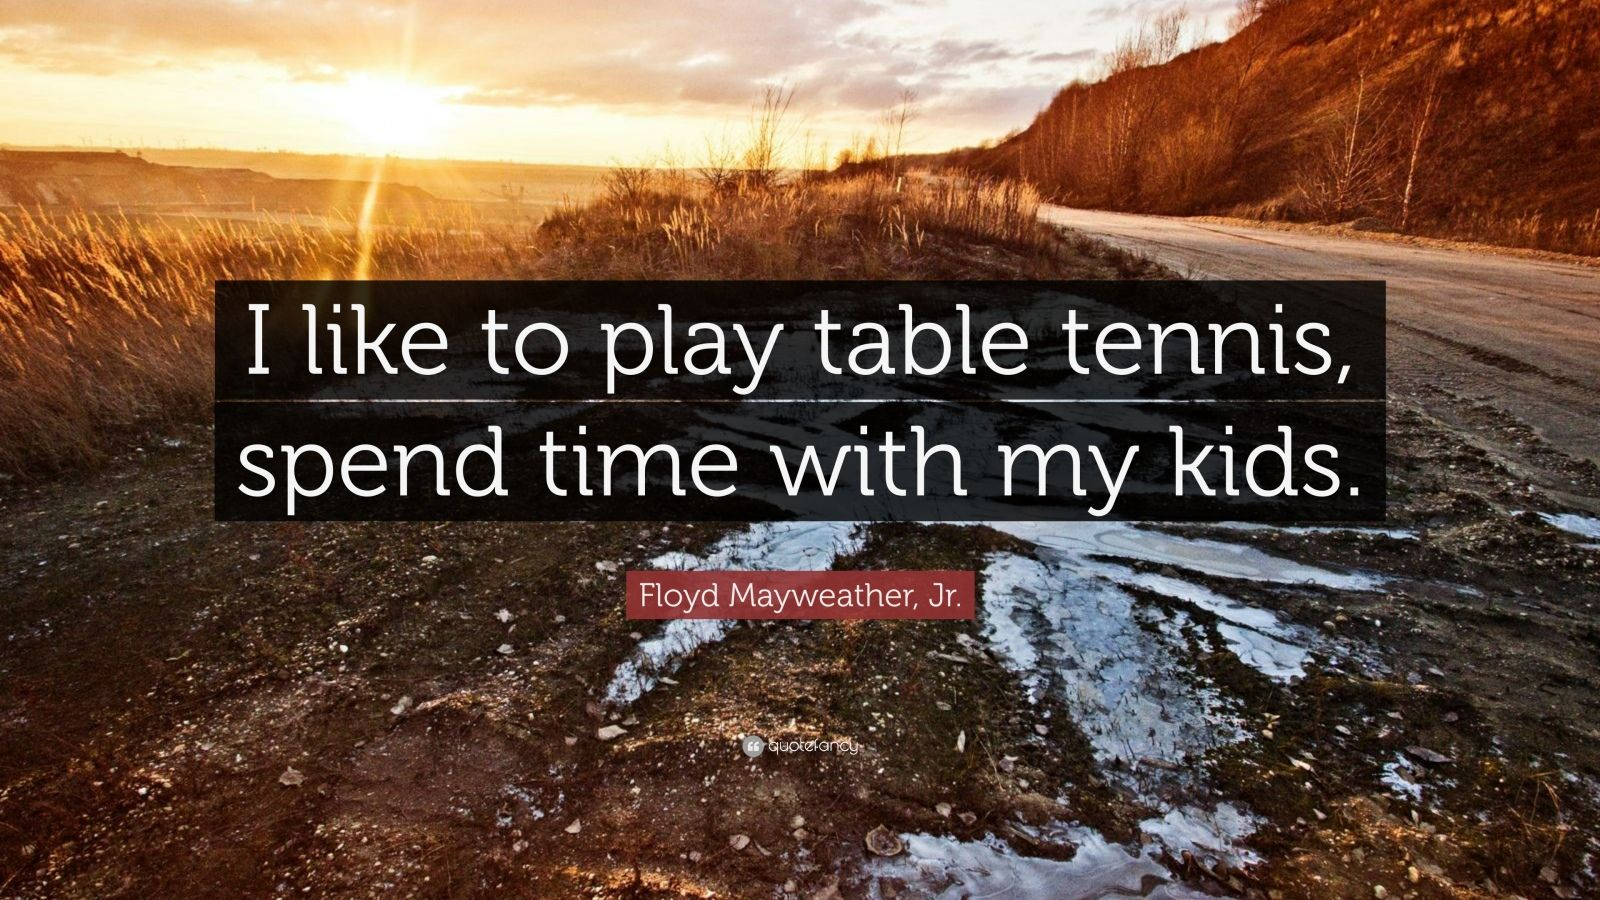 """Floyd Mayweather, Jr. Quote: """"I like to play table tennis, spend time with my kids."""""""